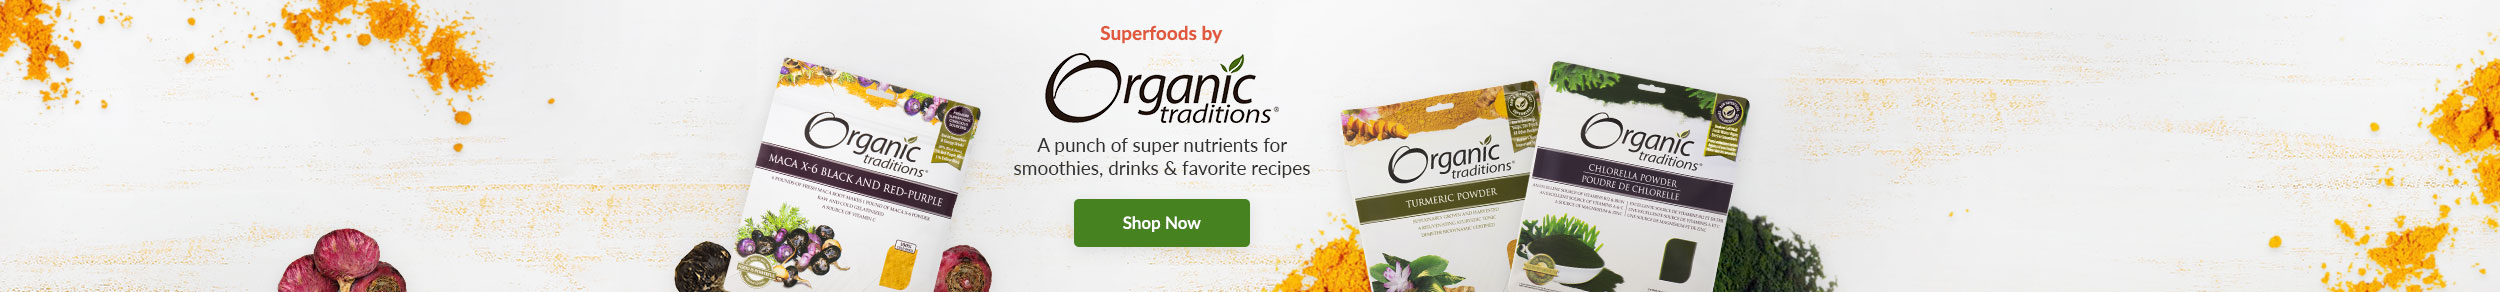 https://i3.pureformulas.net/images/static/Superfoods-by-Organic-Traditions_122818.jpg